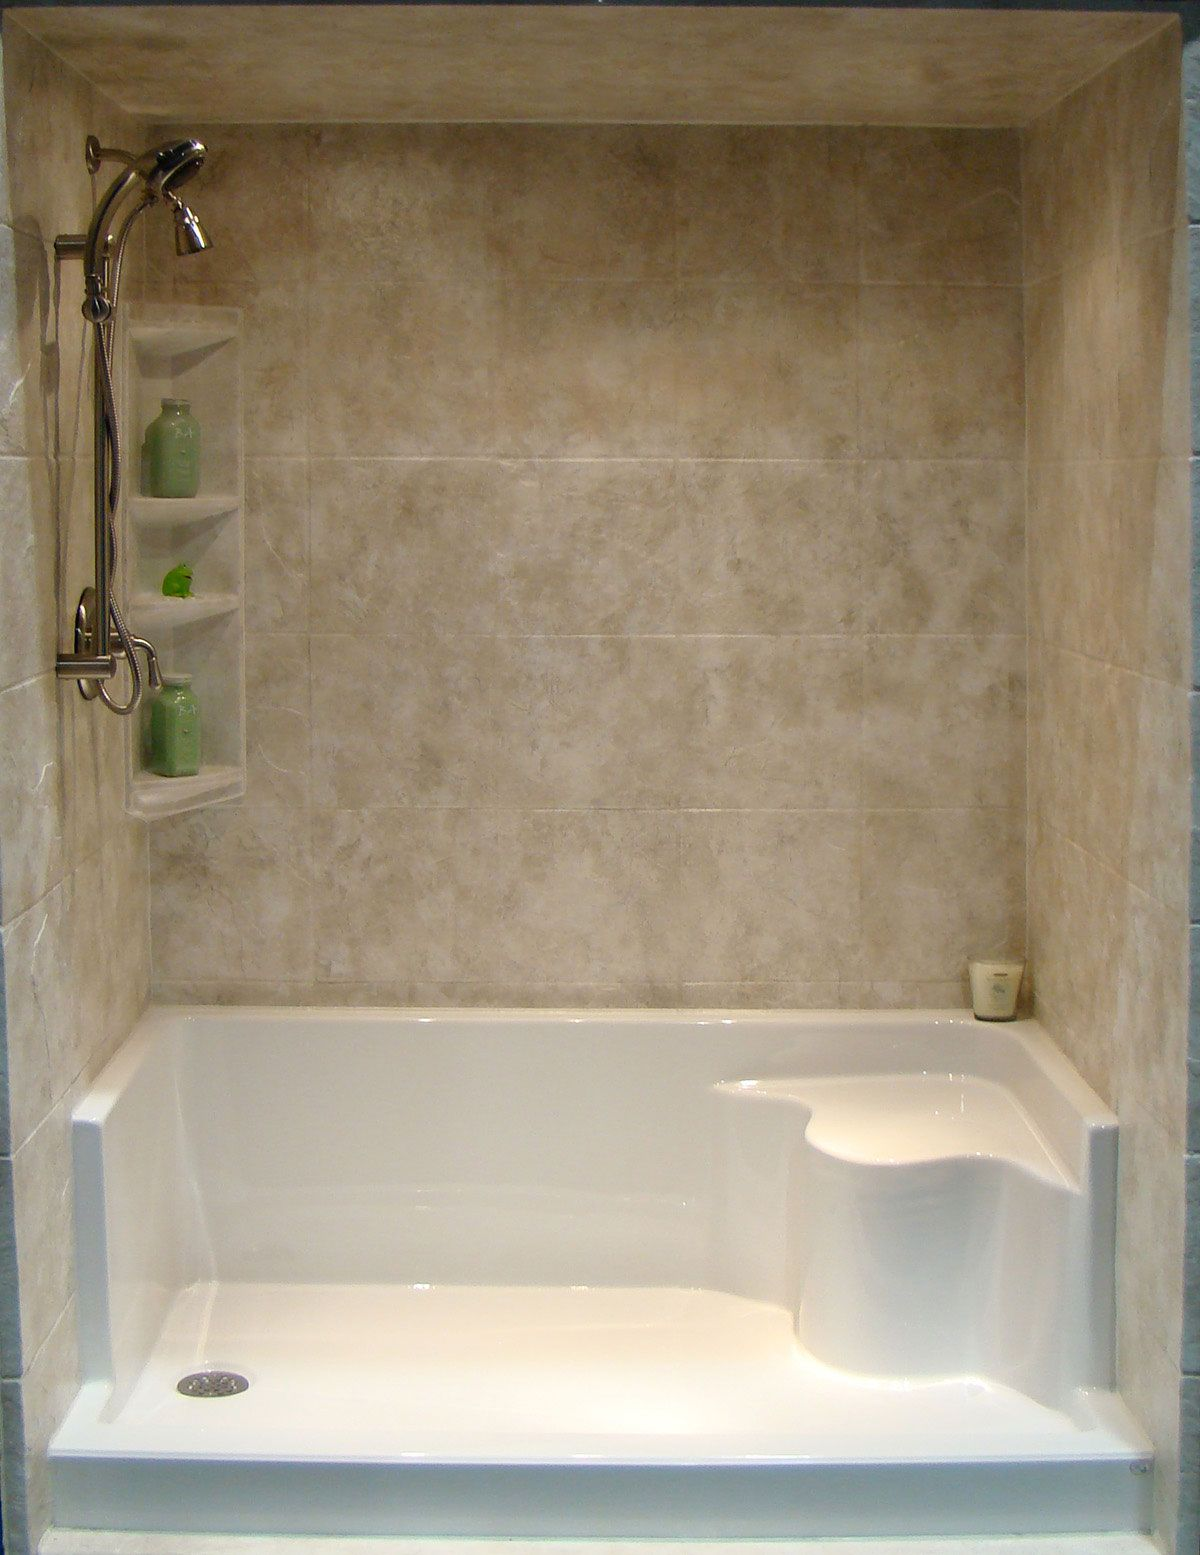 Tub An Shower Conversion Ideas Bathtub Refinishing To Conversions Rebath Todayre Bath